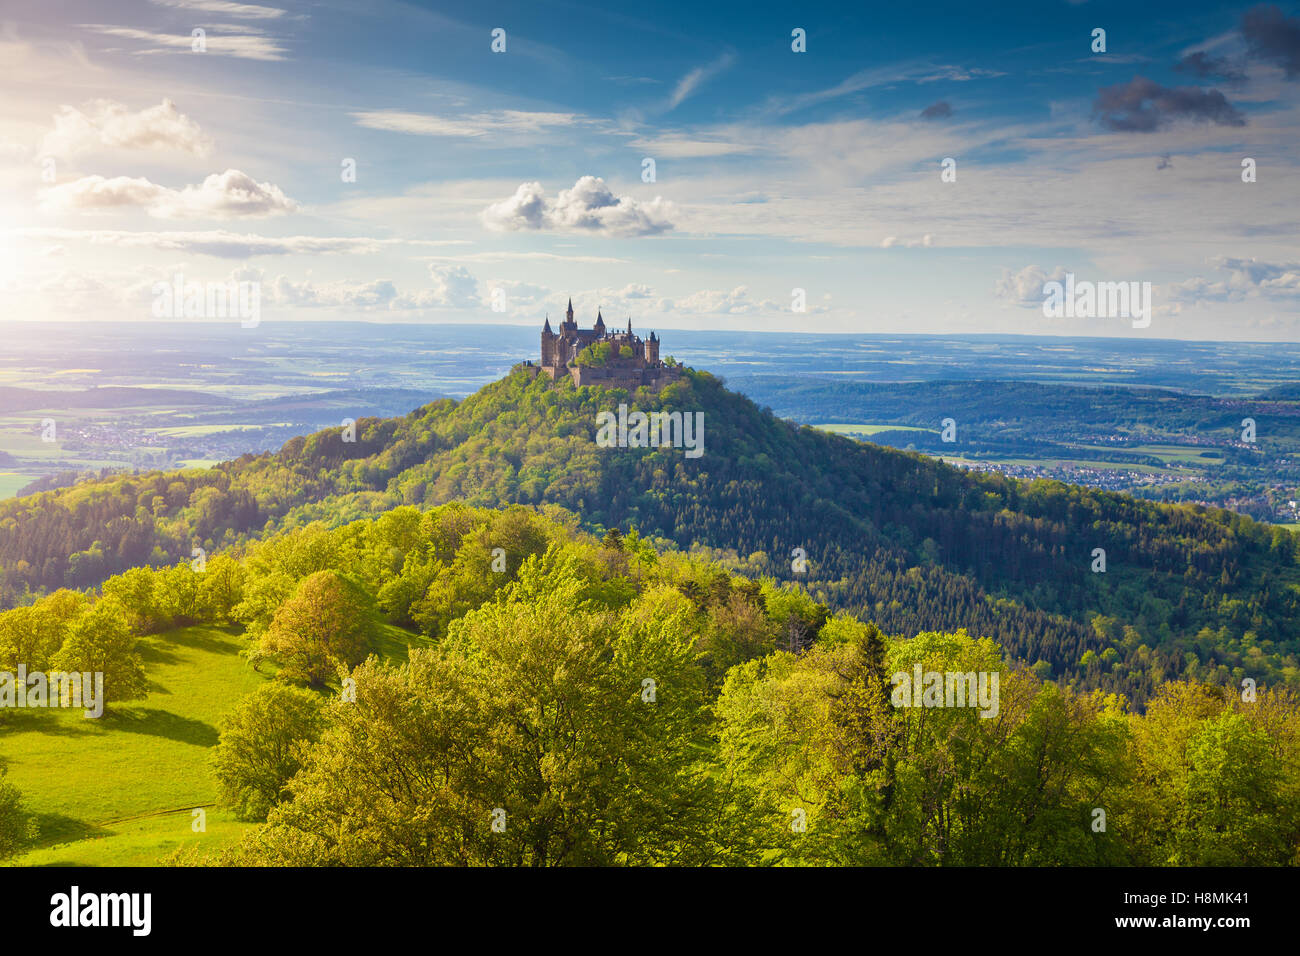 Aerial view of famous Hohenzollern Castle, ancestral seat of the imperial House of Hohenzollern and one of Europe's - Stock Image